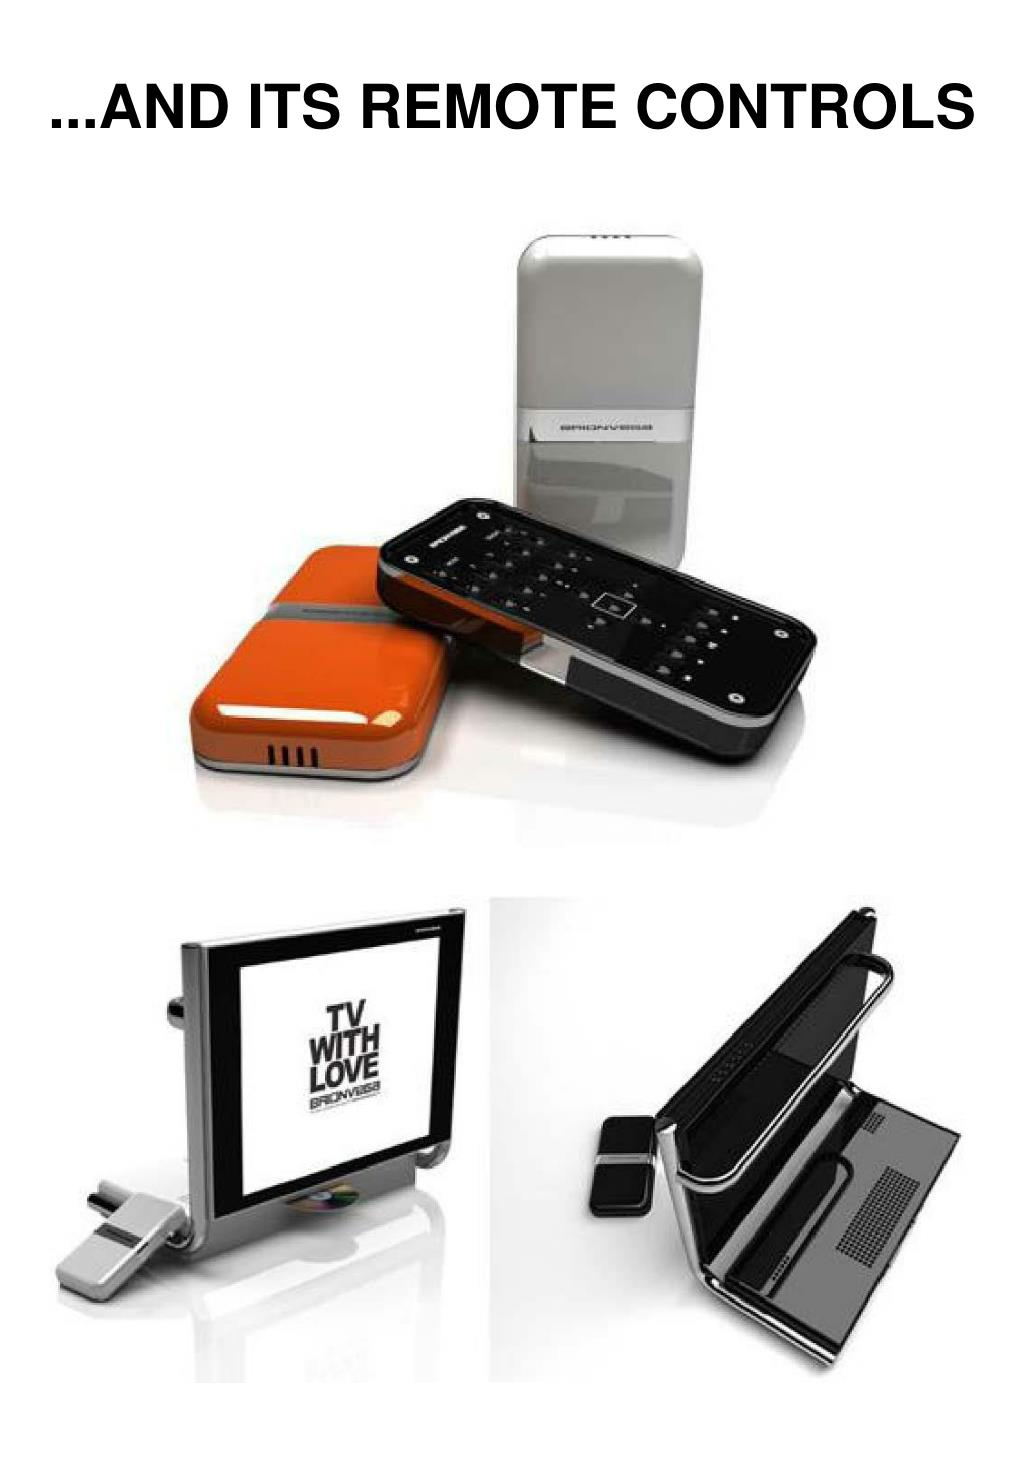 ...AND ITS REMOTE CONTROLS